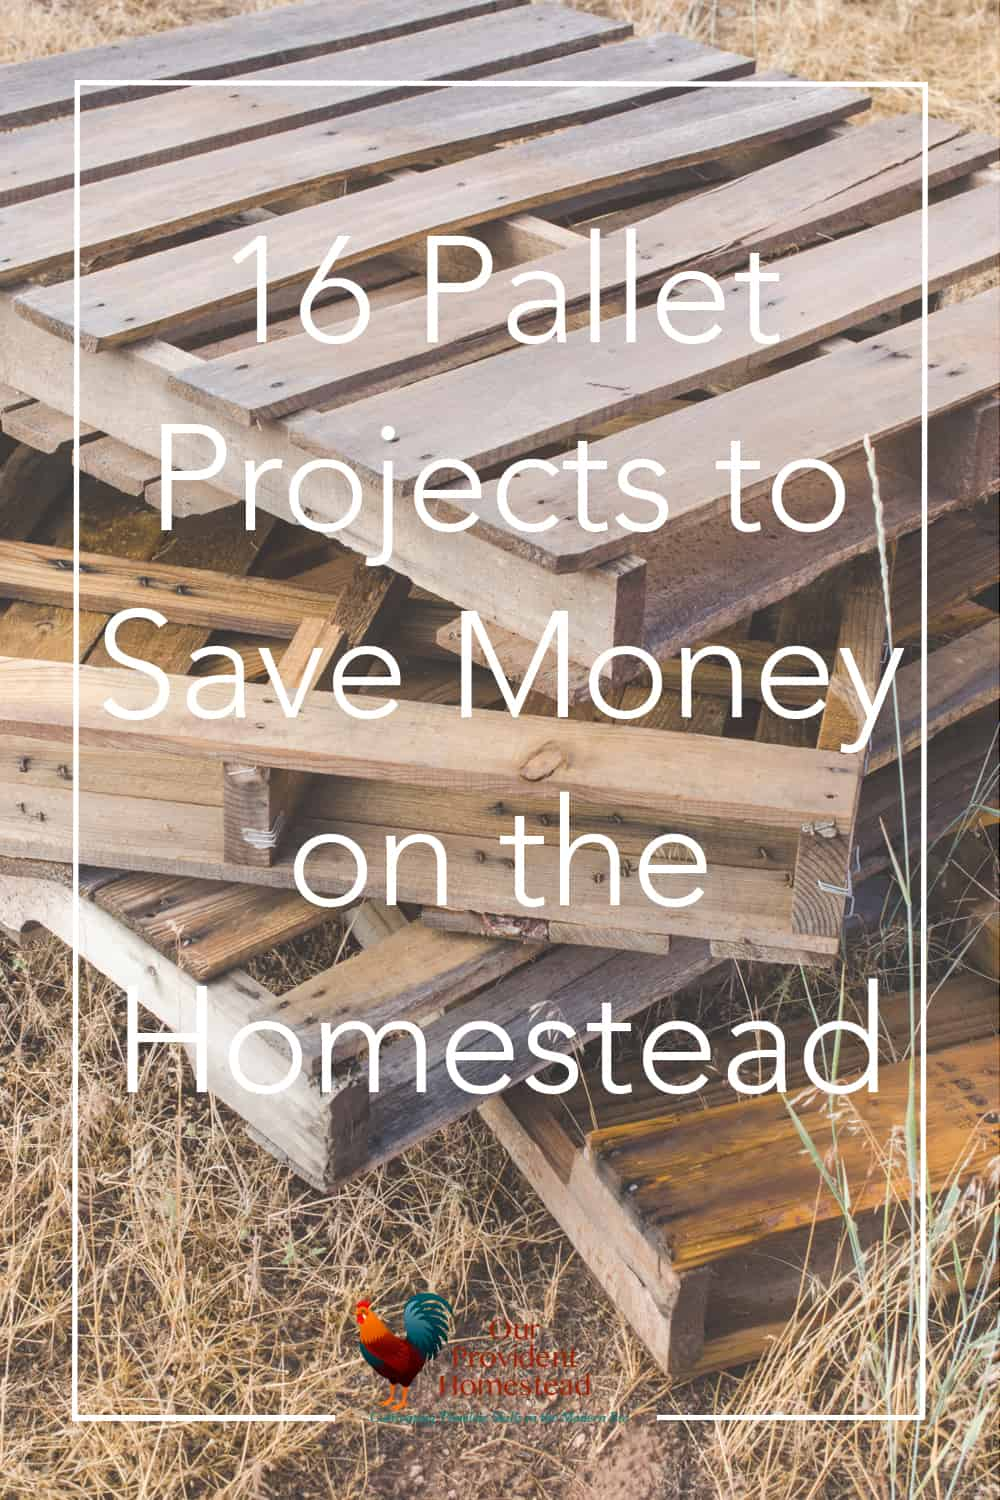 Do you love recycling old stuff to make new stuff? Click here to see how making pallet projects can add fun and functionality to your homestead. #palletfurniture #palletprojects #pallets #homesteading